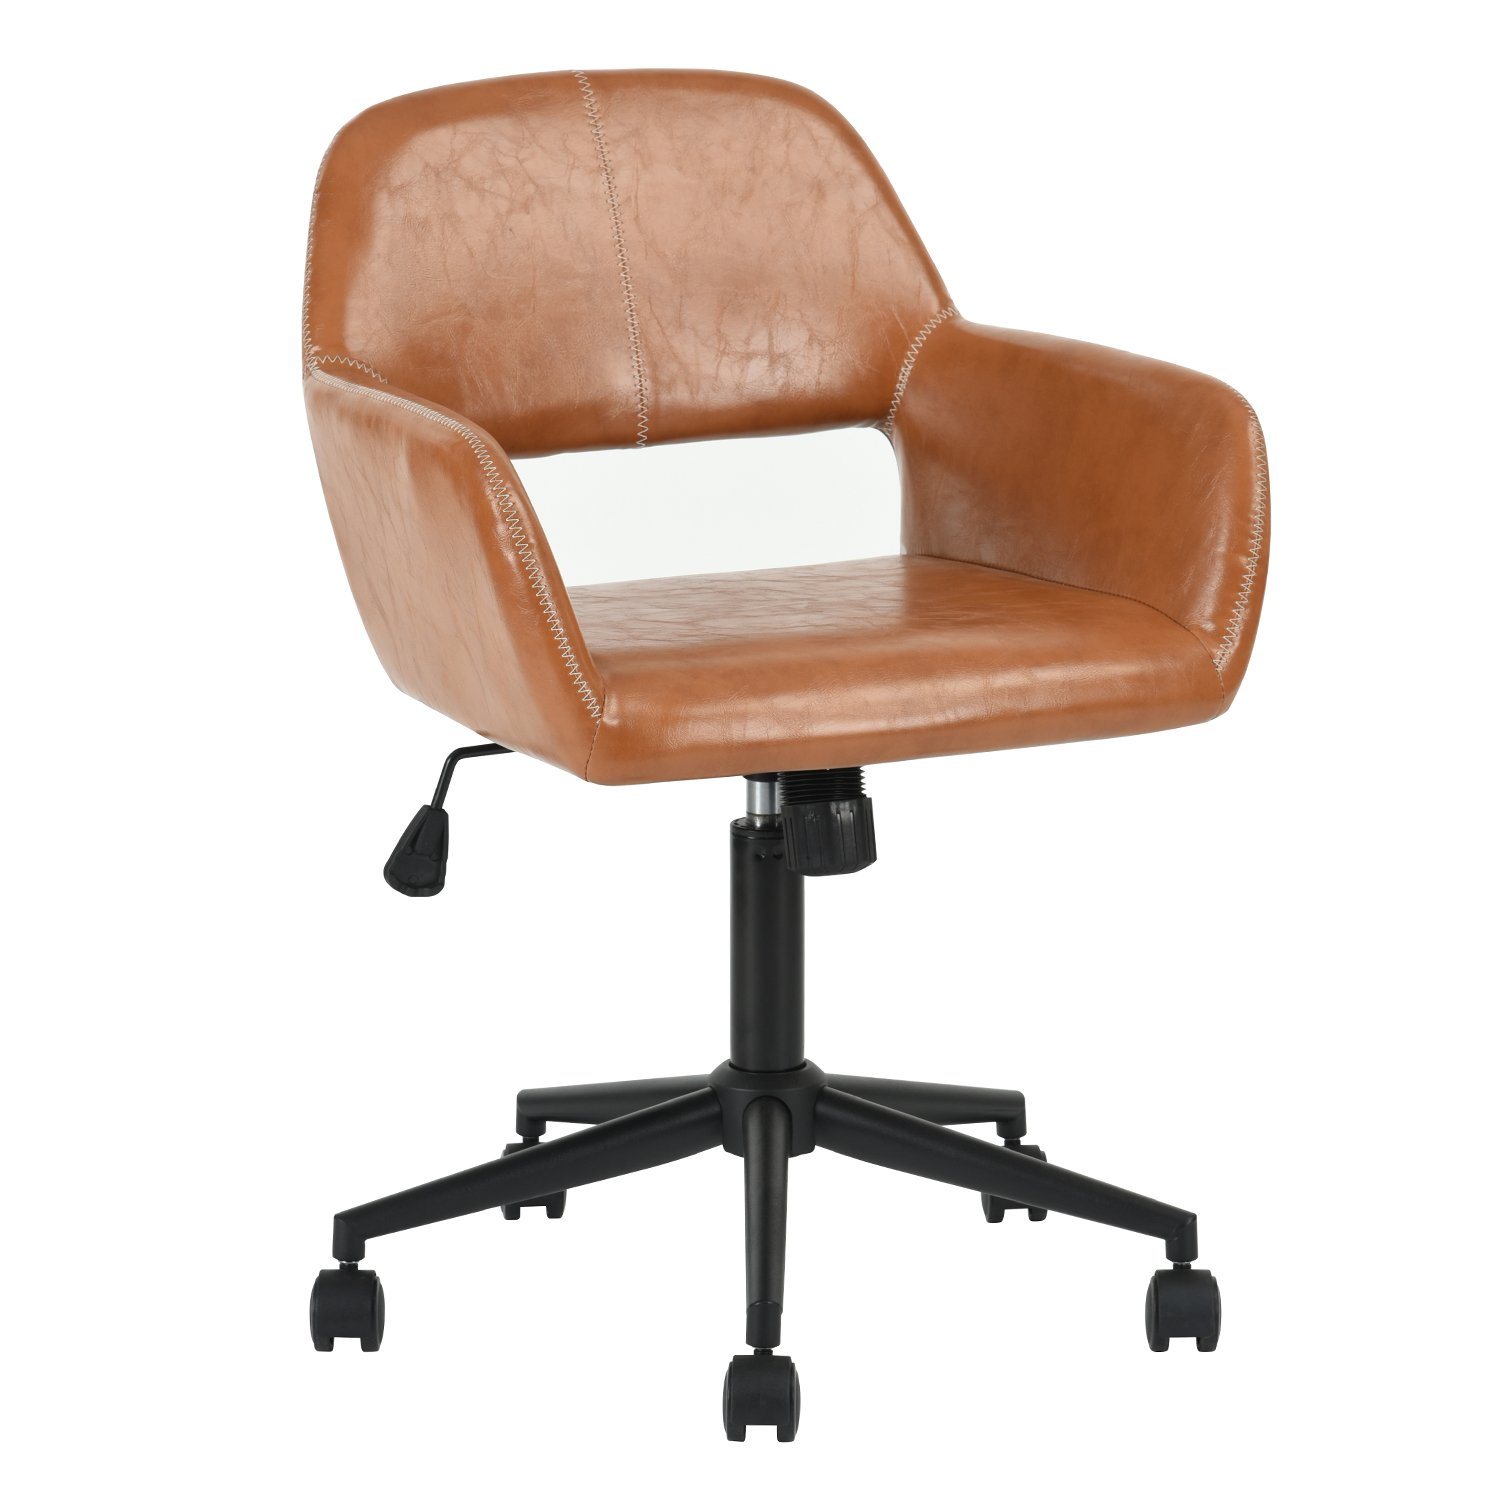 Aingoo Computer Office Desk Chair Swivel Accent Chair PU Leather Reception Armchair for Home Office,Brown